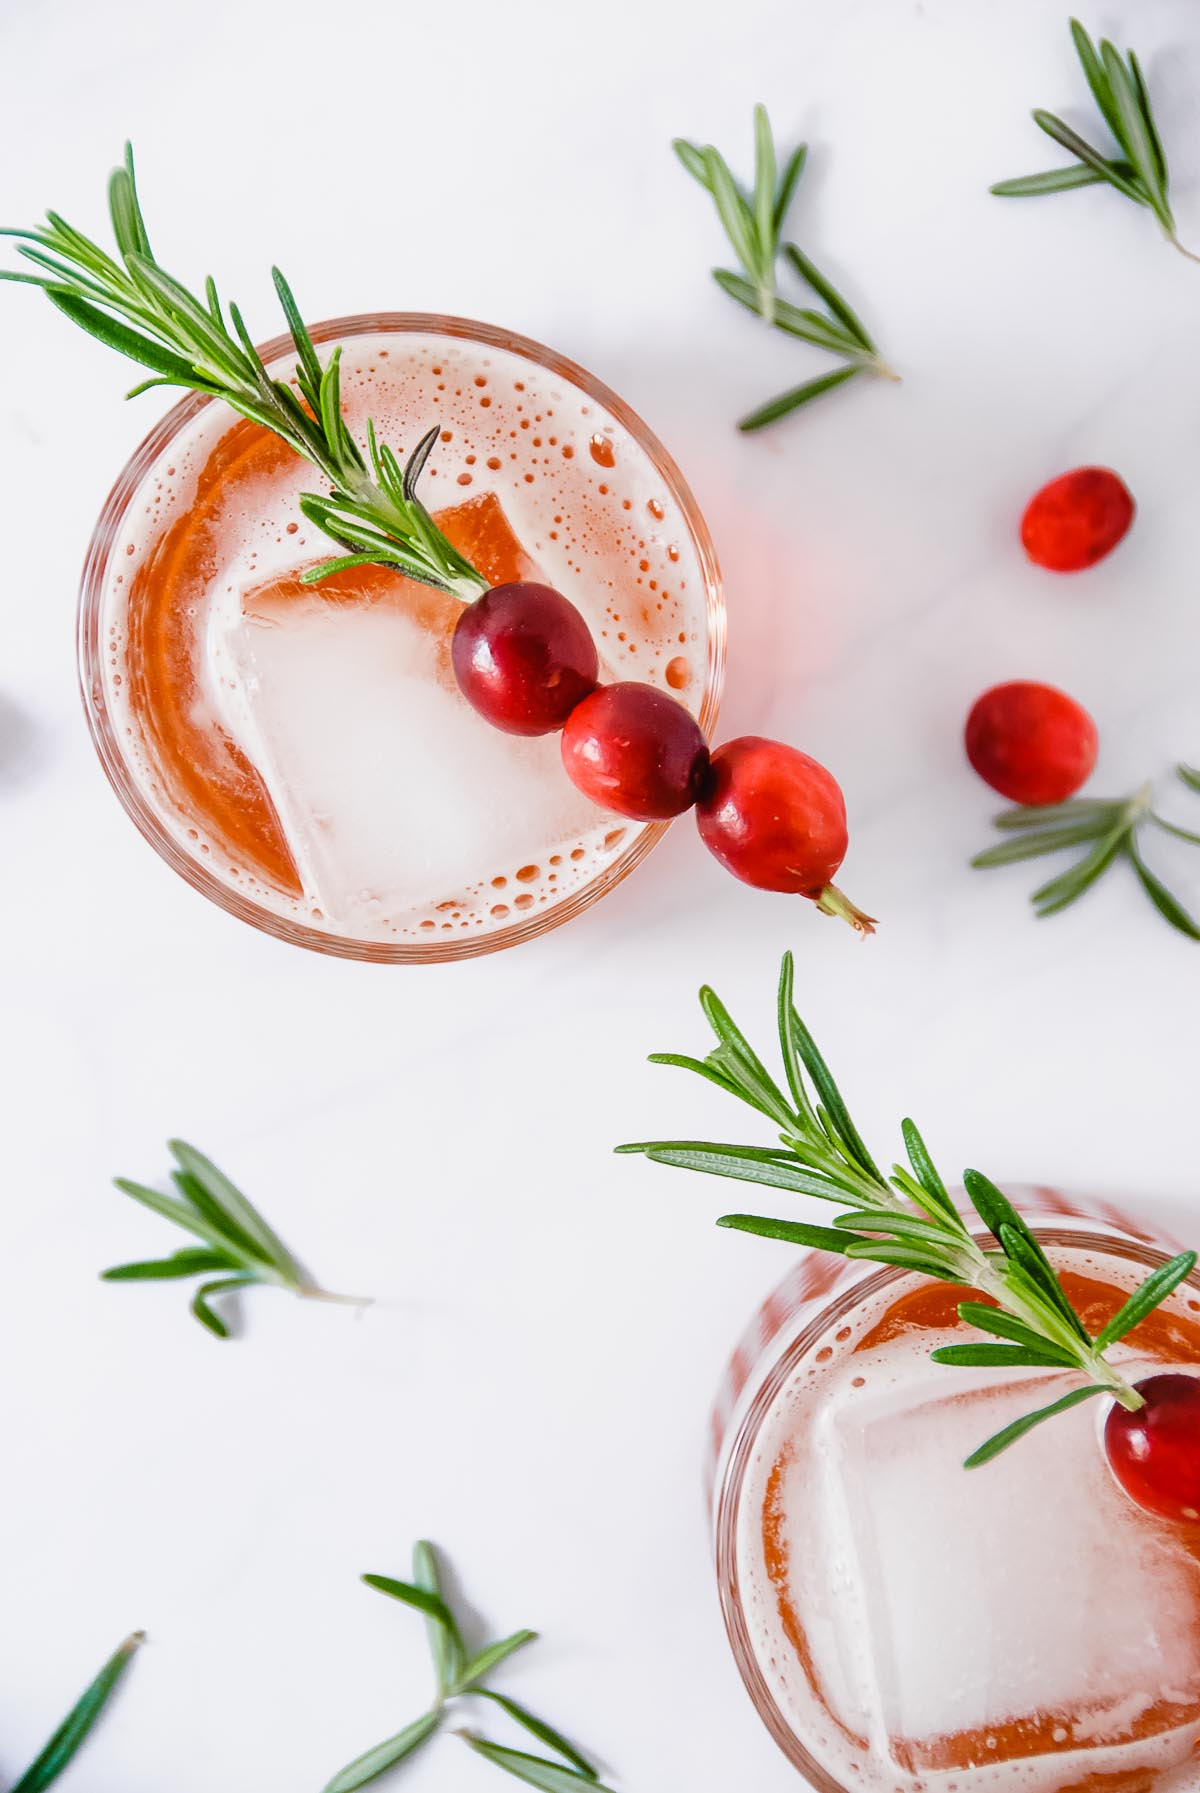 Santa's Secret Cocktail is all of the classic holiday flavours combined into one drink! Rosemary infused simple syrup, orange liquor and cranberry juice are shaken together and topped with prosecco and a cranberry rosemary skewer to make the perfect Christmas cocktail! - thebeaderchef.com #cocktail #mocktail #santa #christmas #holiday #drinks #cranberry #rosemary #orangeliquor #prosecco